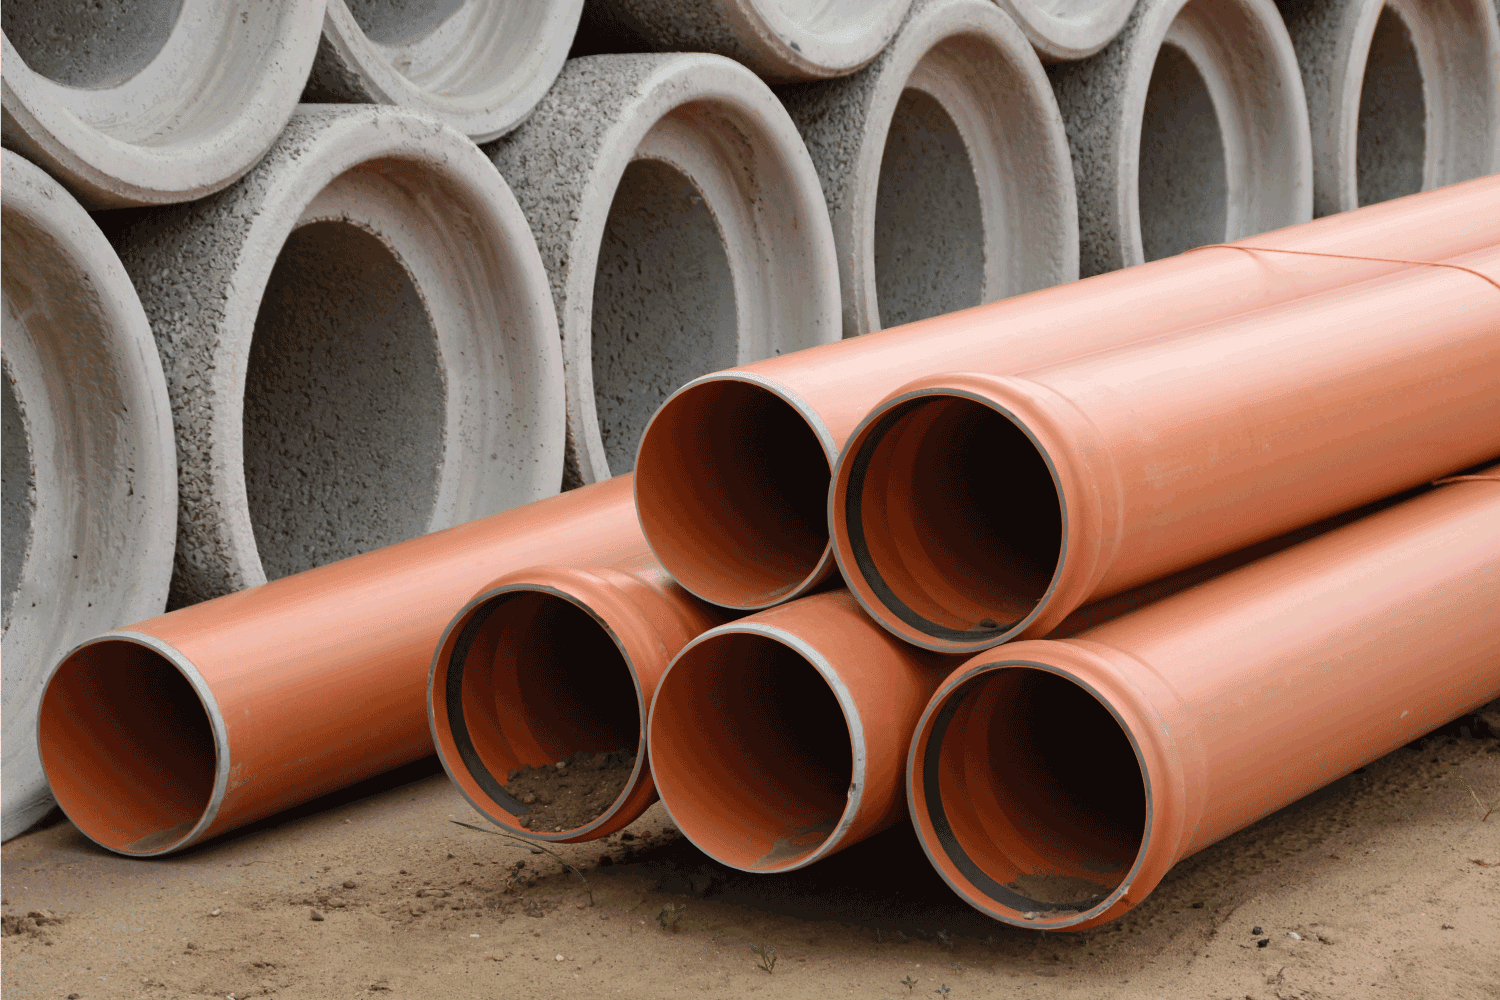 Construction site, concrete sewage and PVC pipe tubes material for waste water and sanitary.